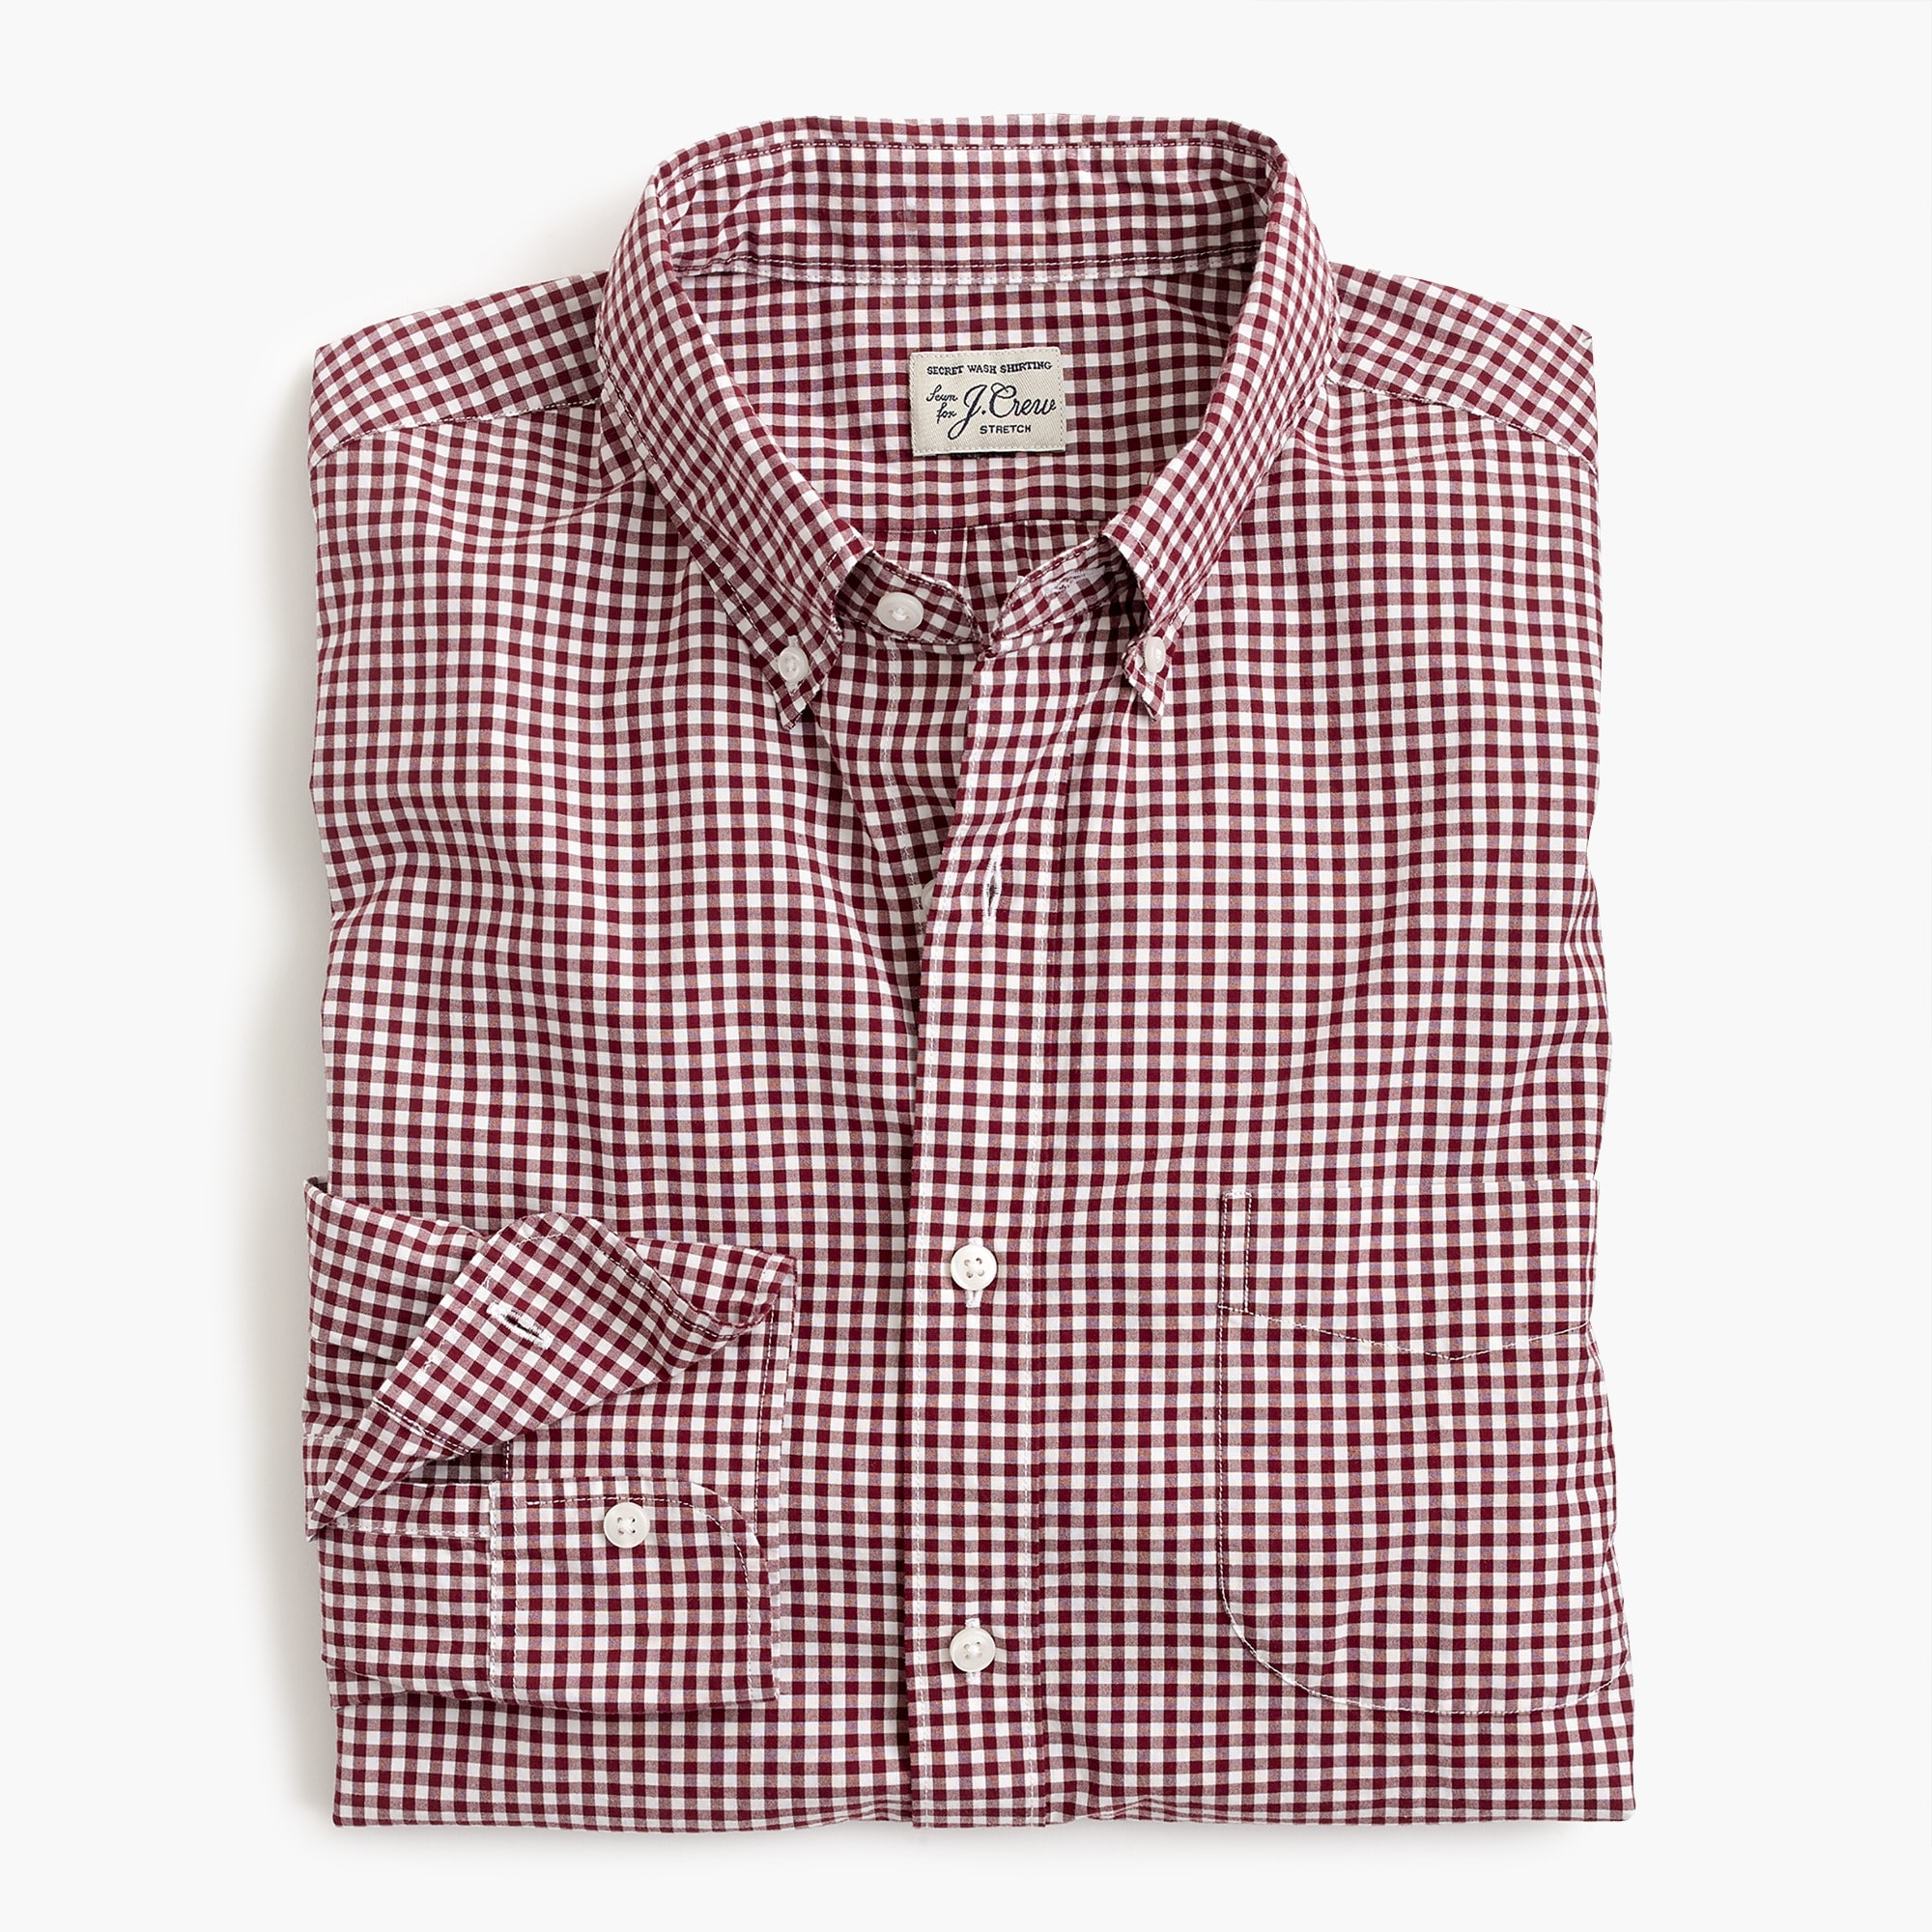 Image 5 for Tall stretch Secret Wash shirt in gingham poplin